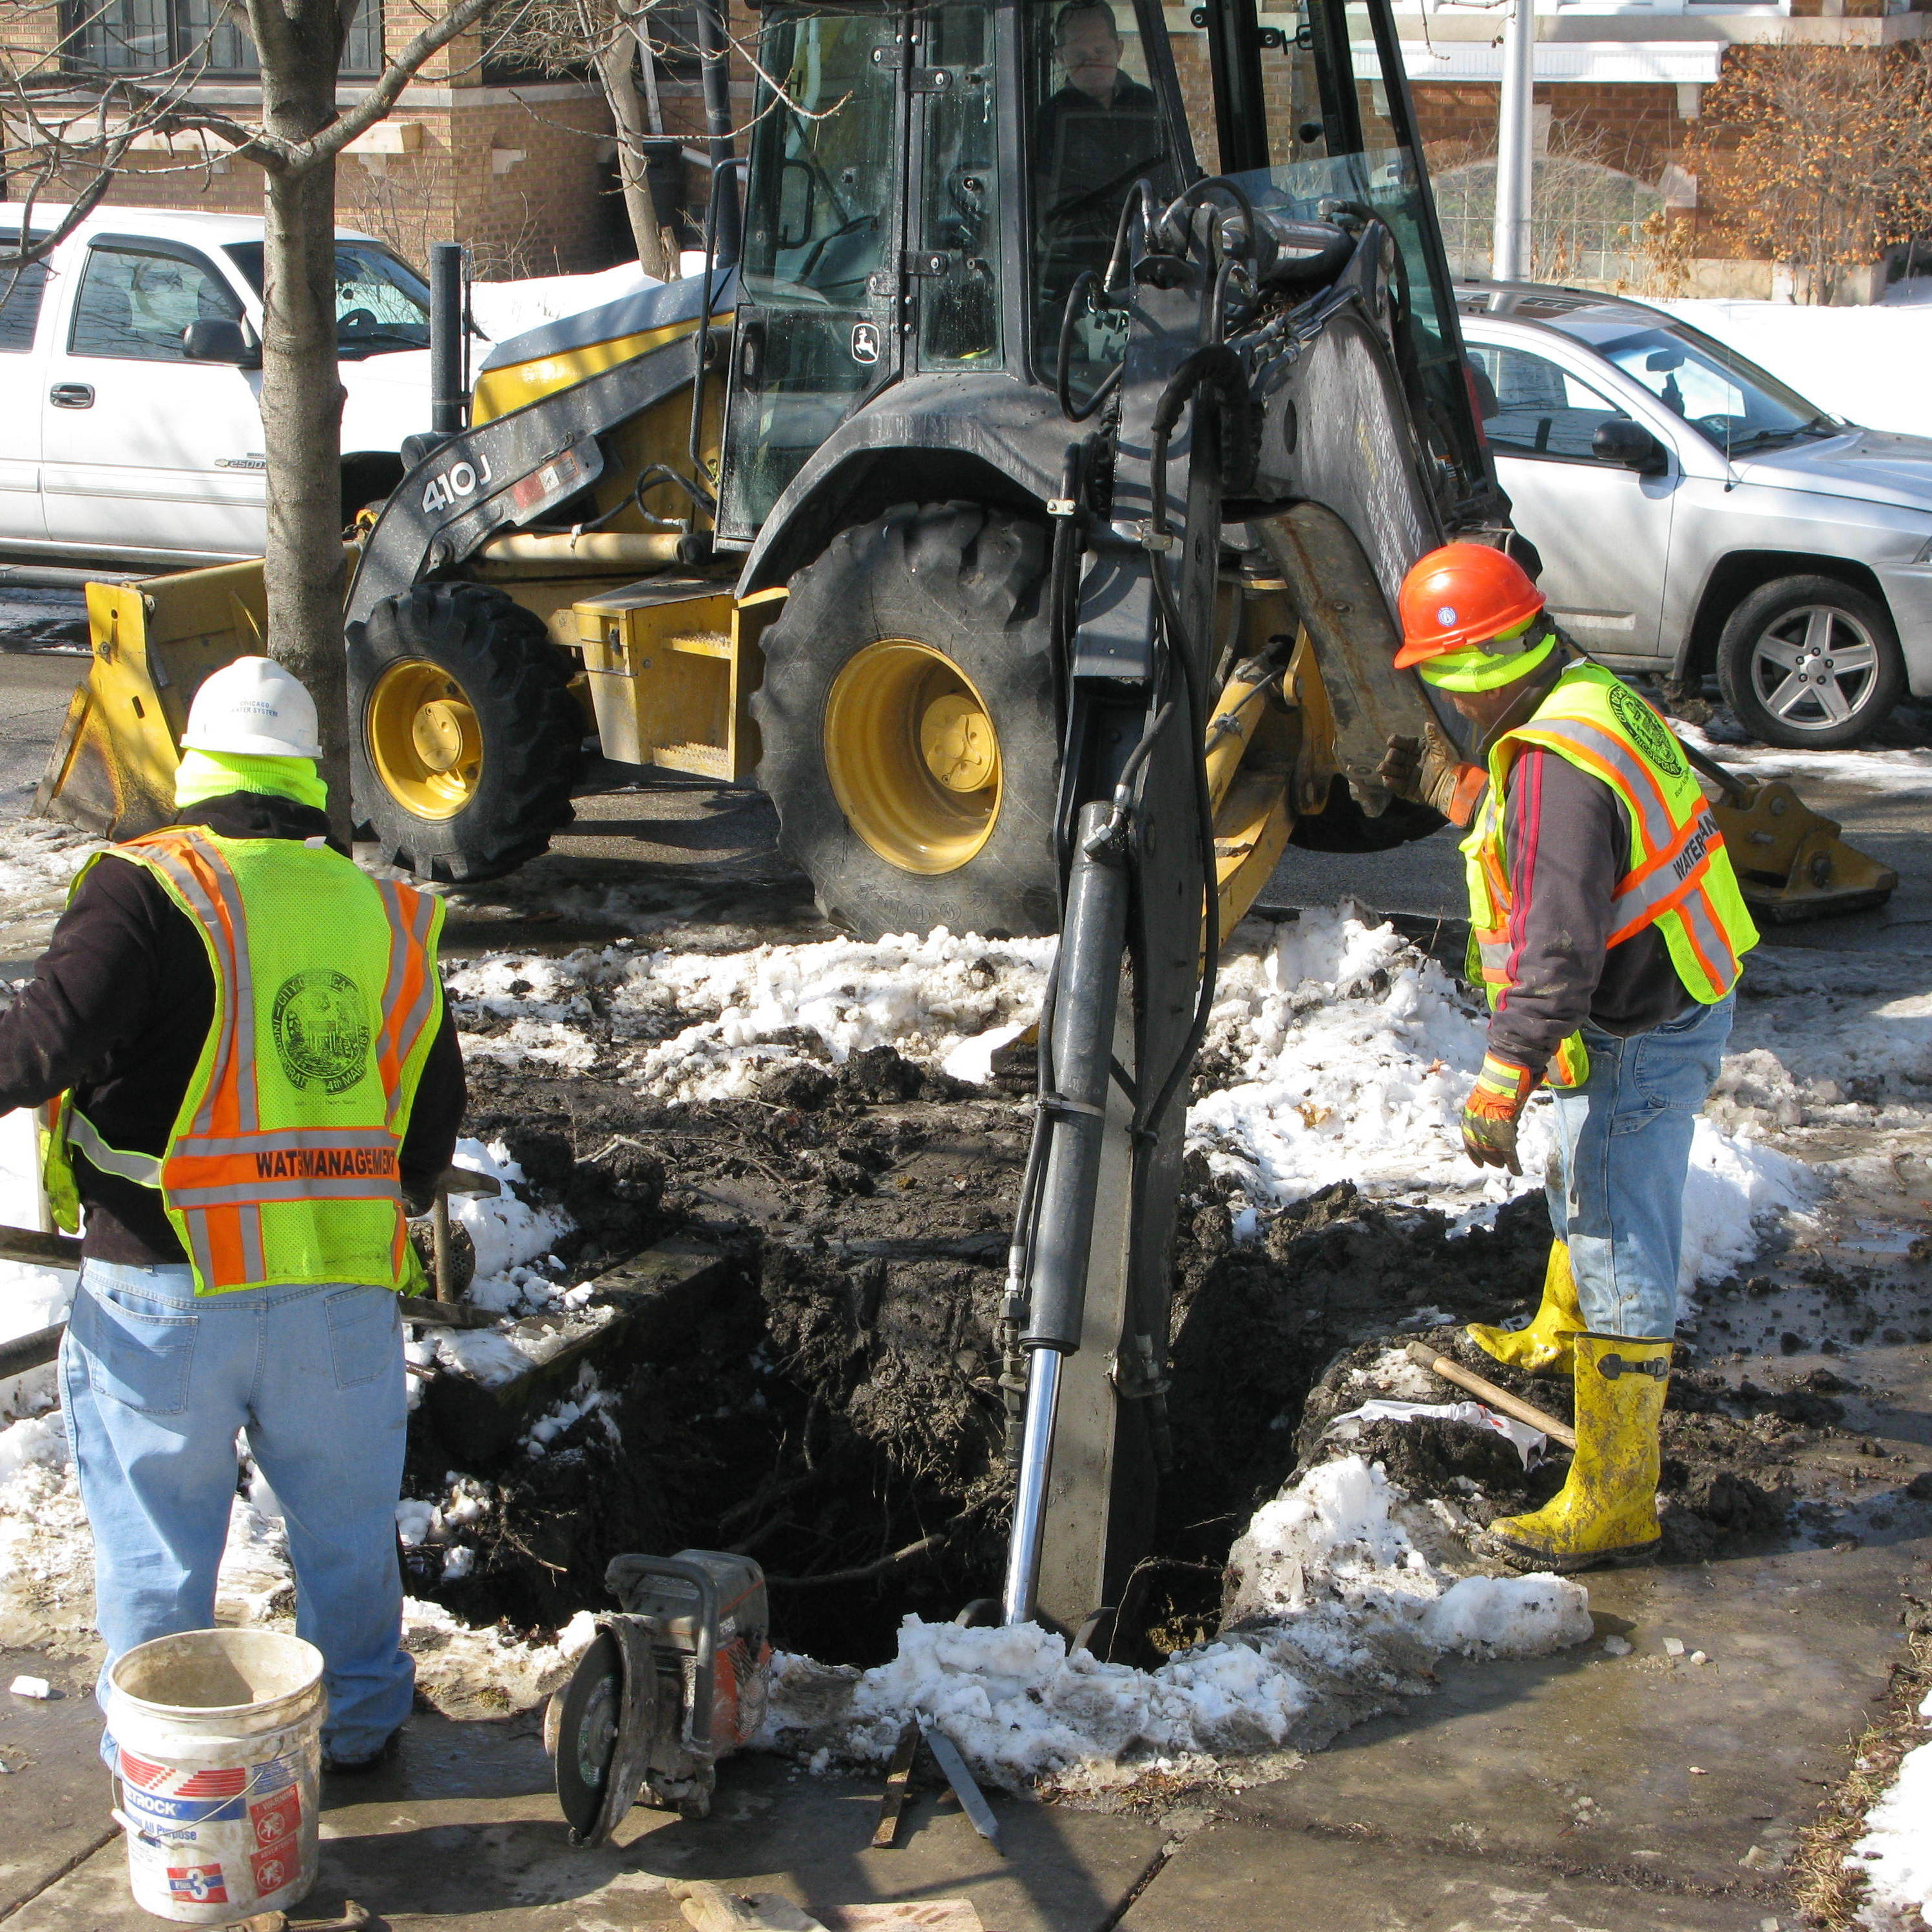 A backhoe operated by a Chicago Department of Water Management worker digs a trench about 5 feet deep so other workers can repair a leak in a waterline deep underground.